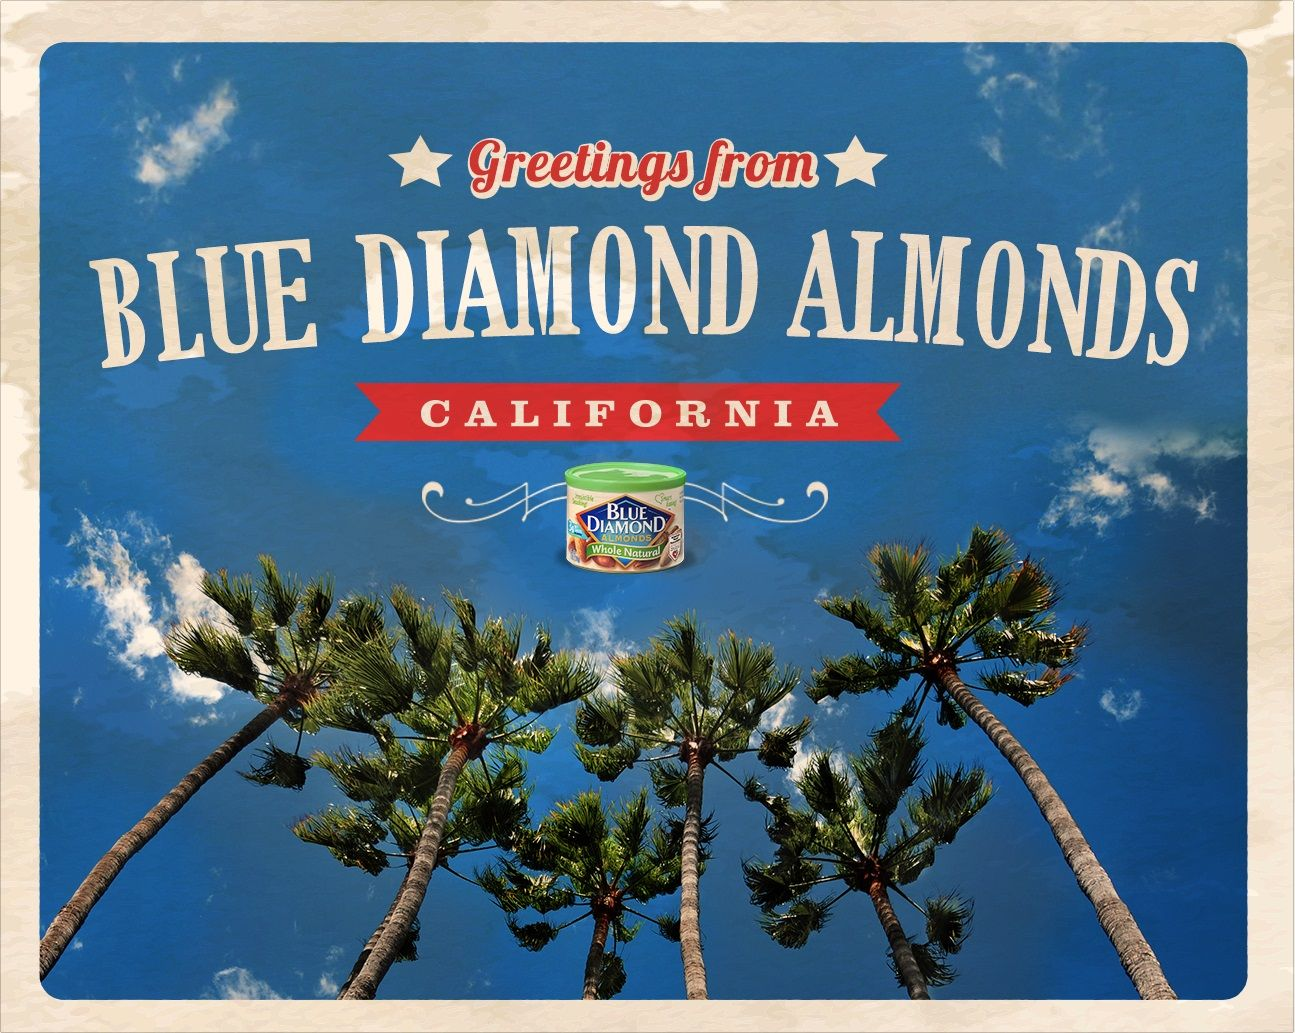 This is the view I grew up with. Add sand & waves, and the view is complete. #HermosaBeach. @Blue Diamond Almonds #sweepstakes